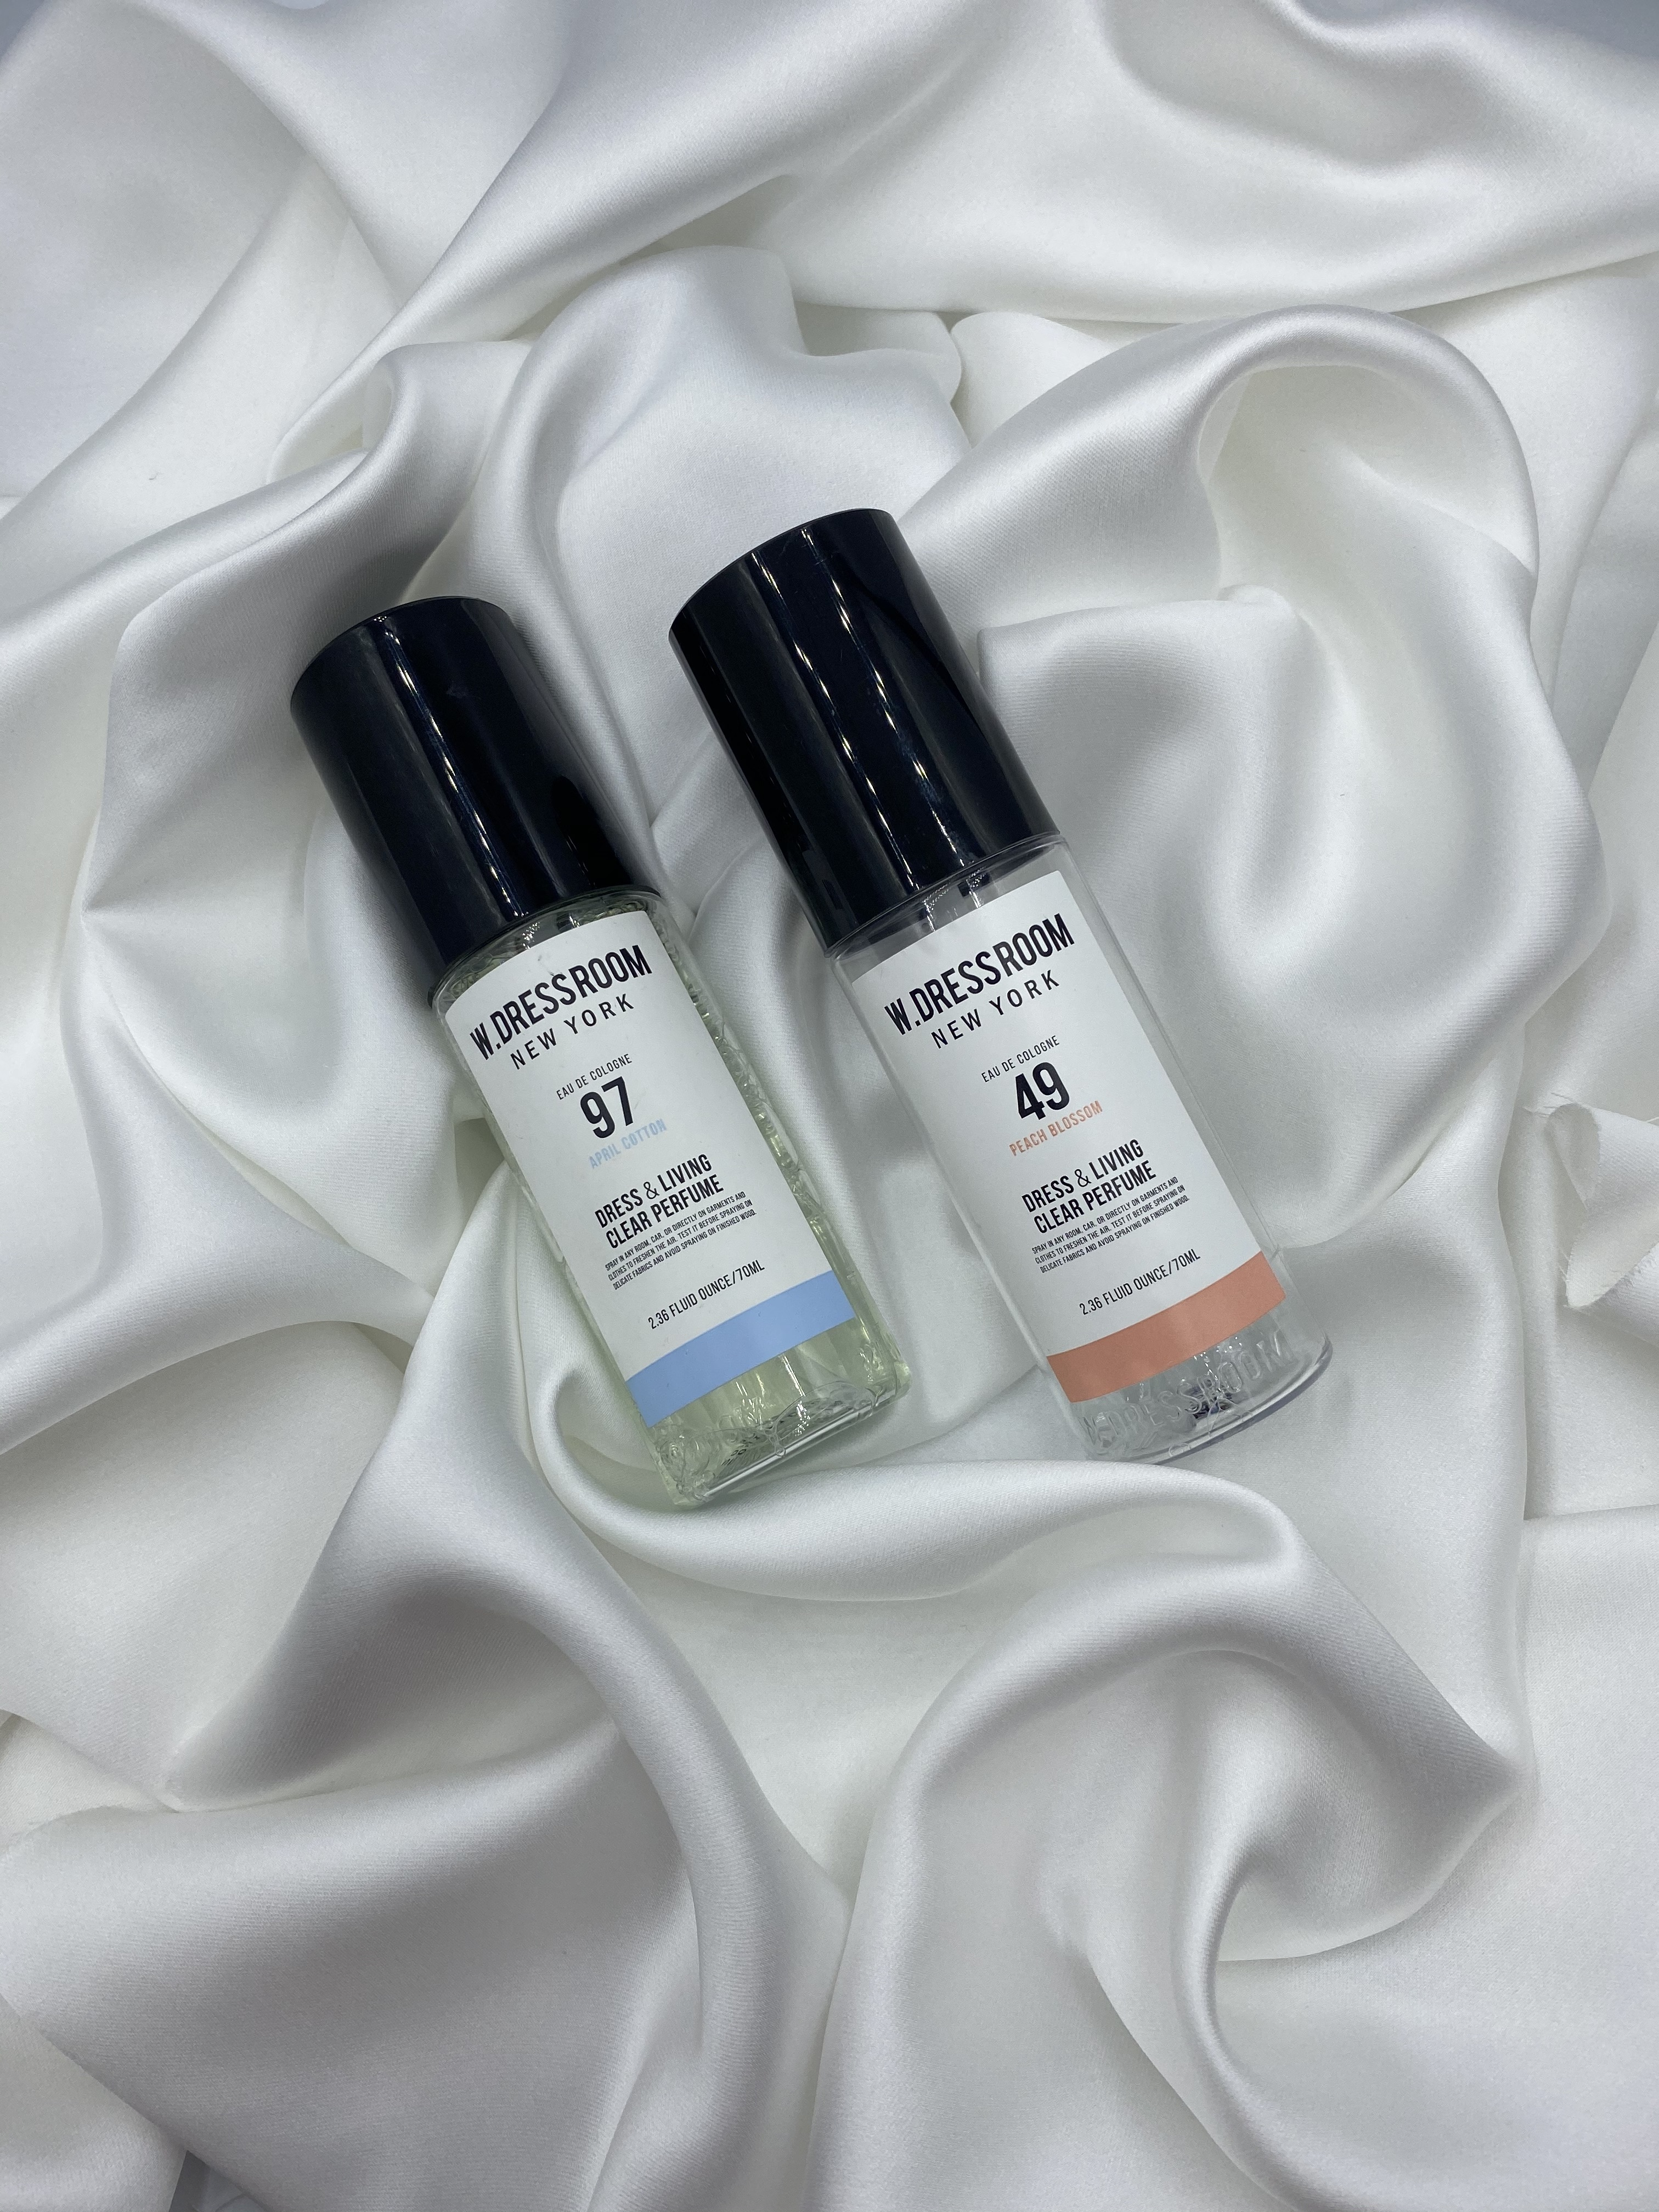 REVIEW | W.Dressroom Dress & Living Clear Perfumes